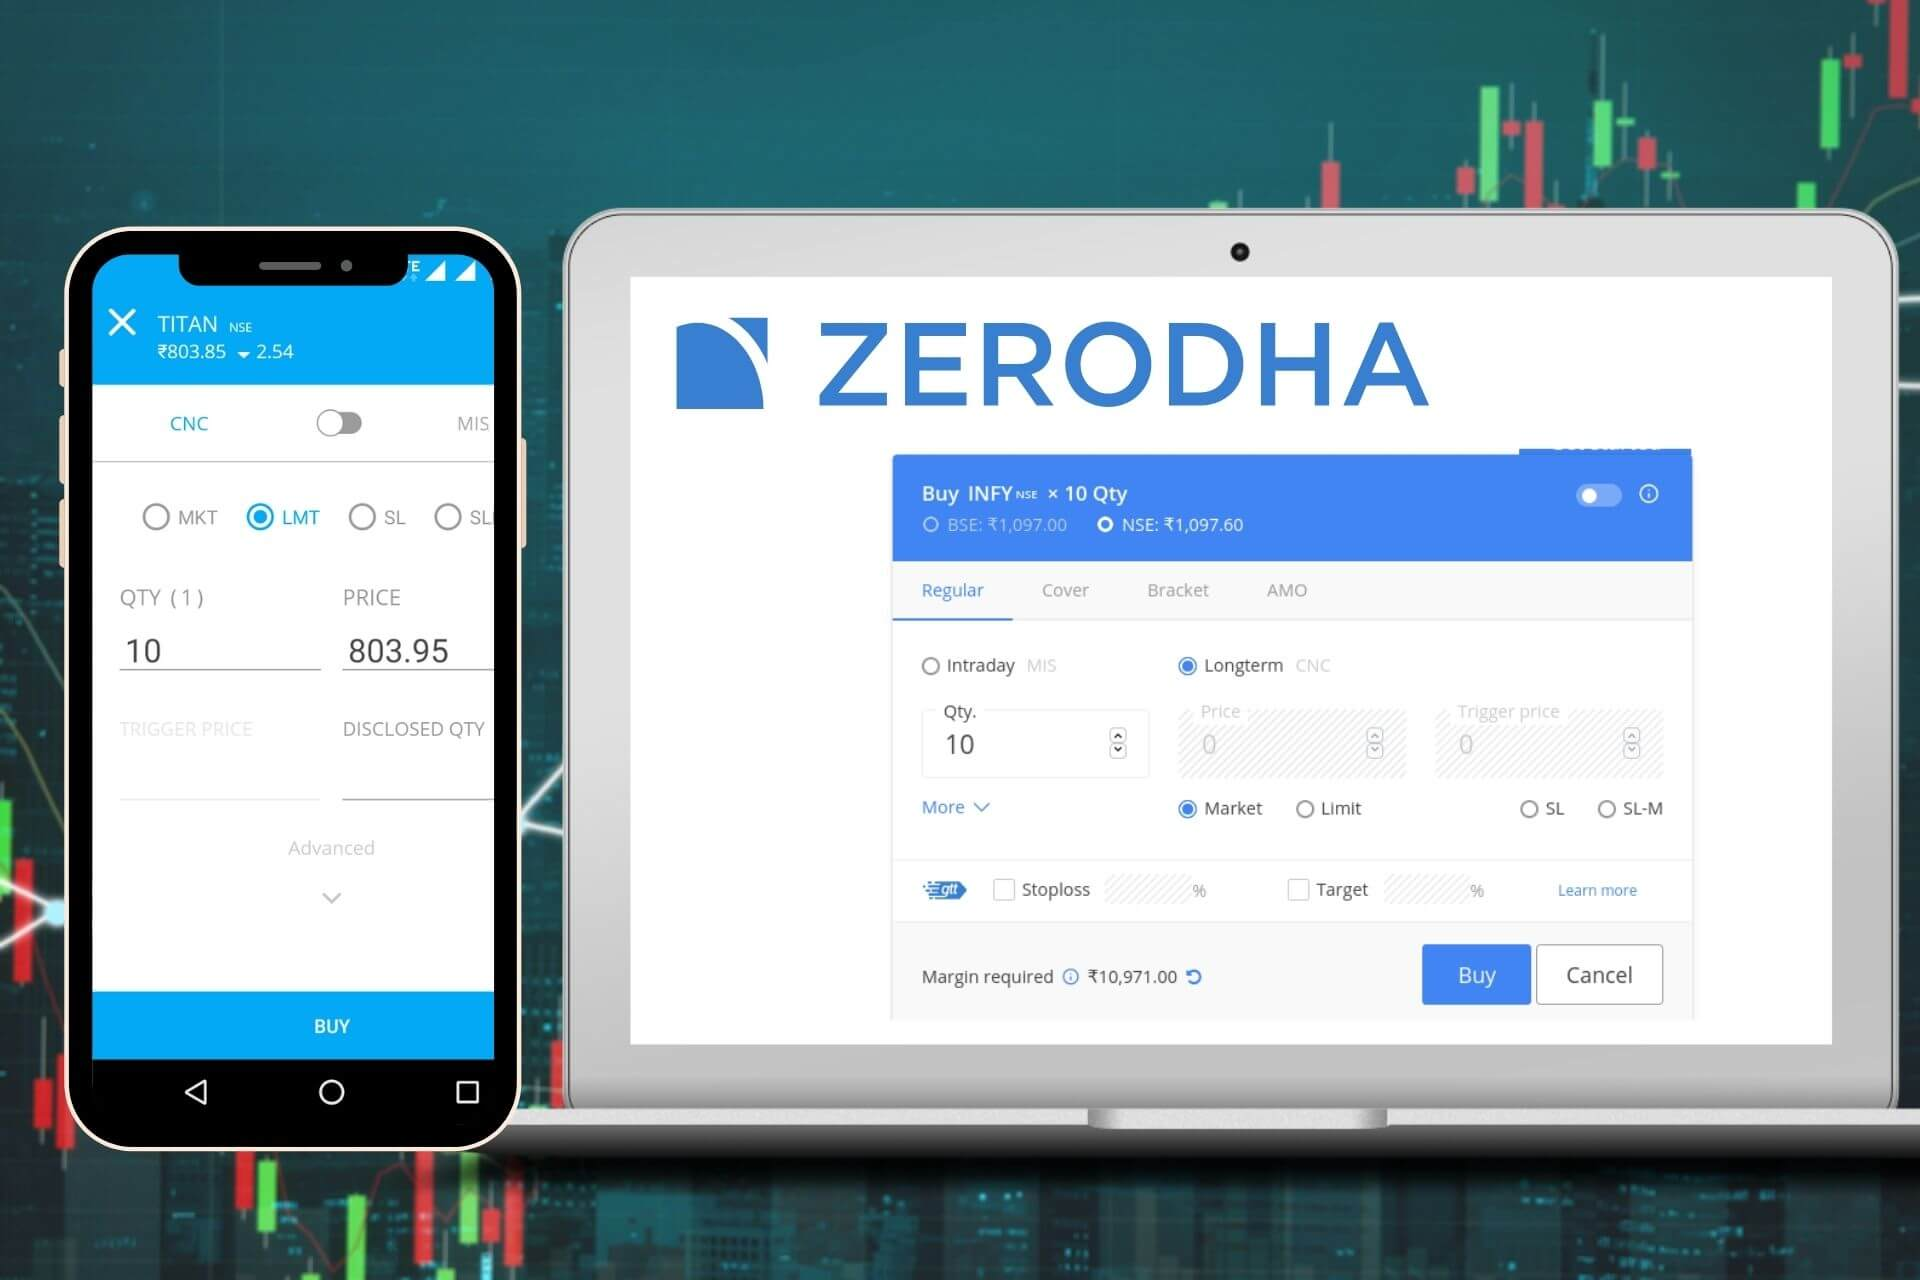 Zerodha Product Codes Explained- CNC, MIS meaning, SL & More cover